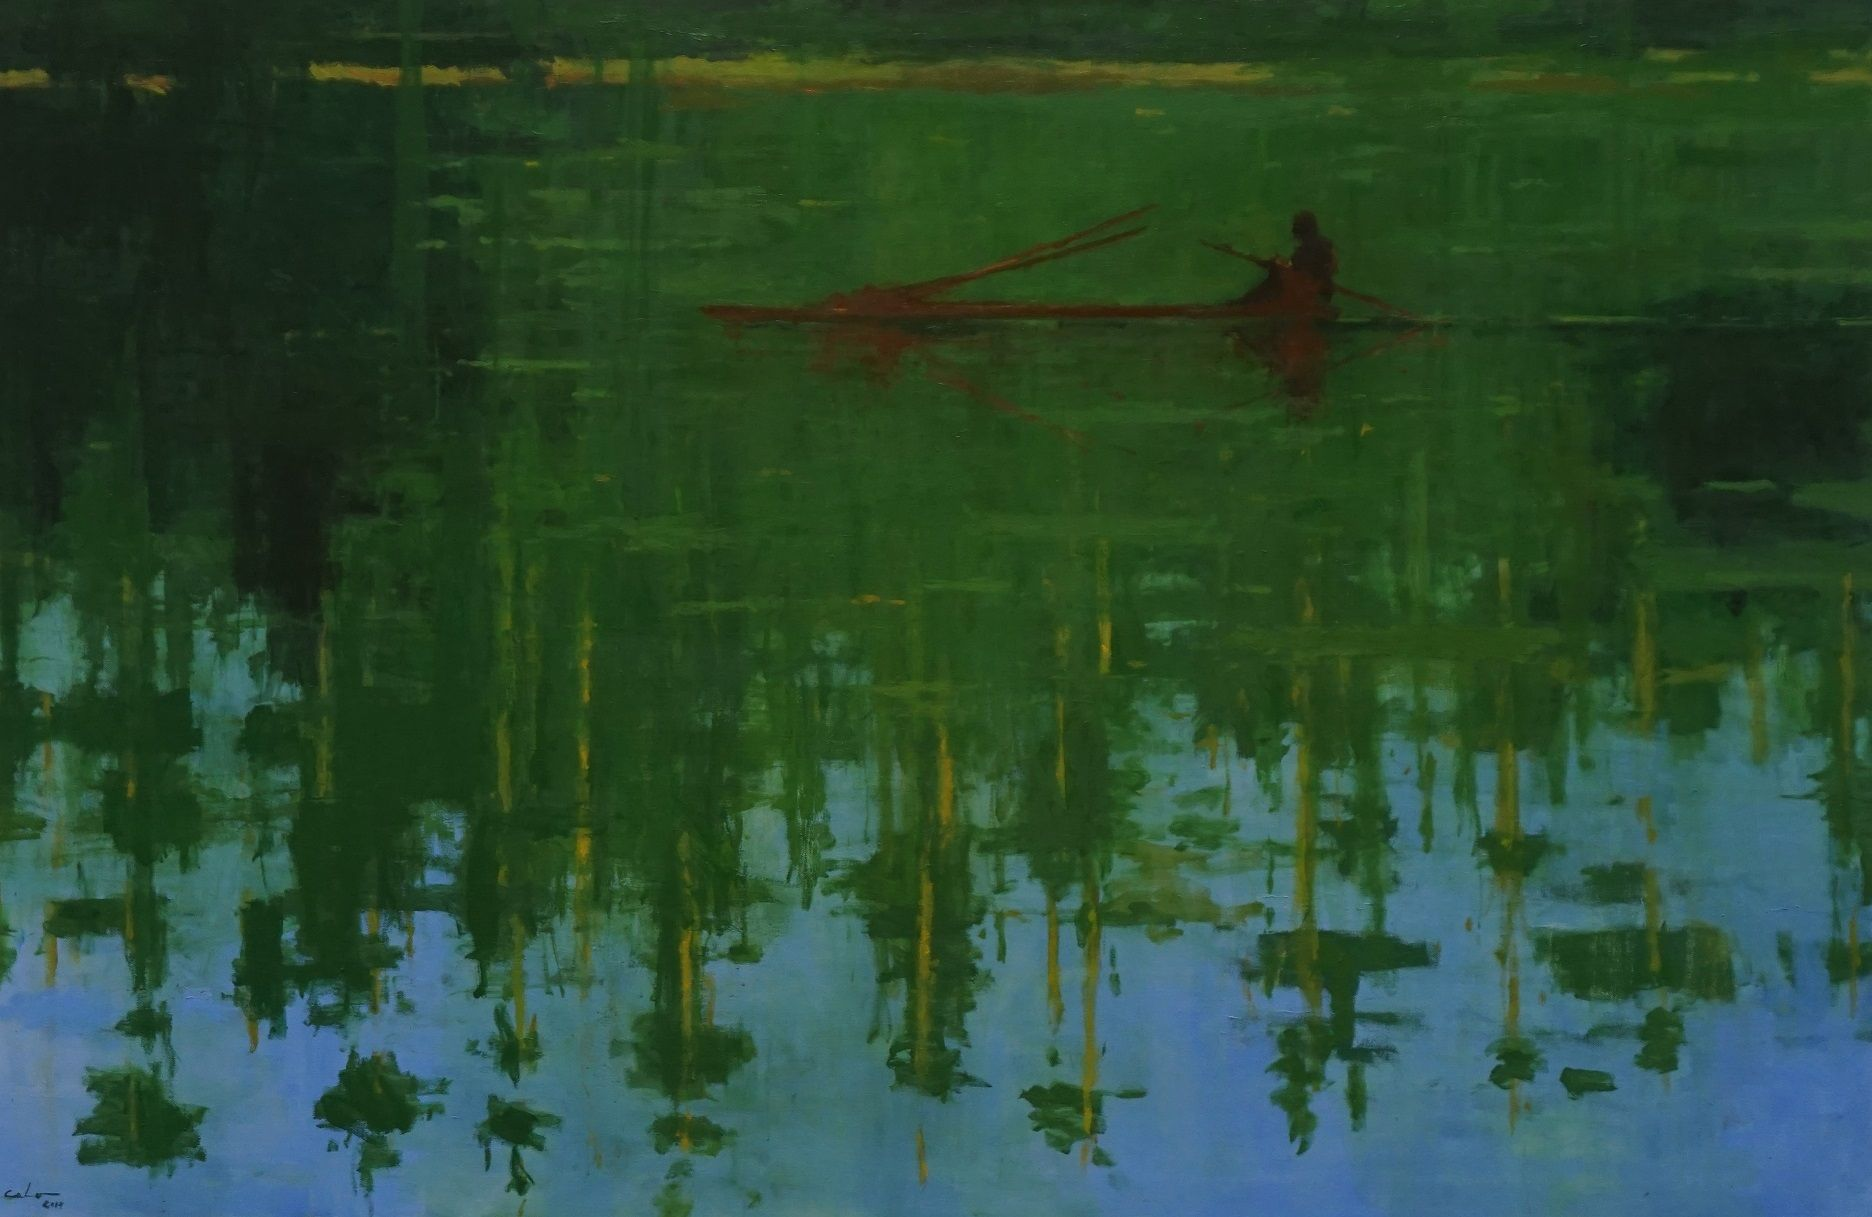 Reflection n°6, Jungle series,Calo  Carratalá,Contemporary painting